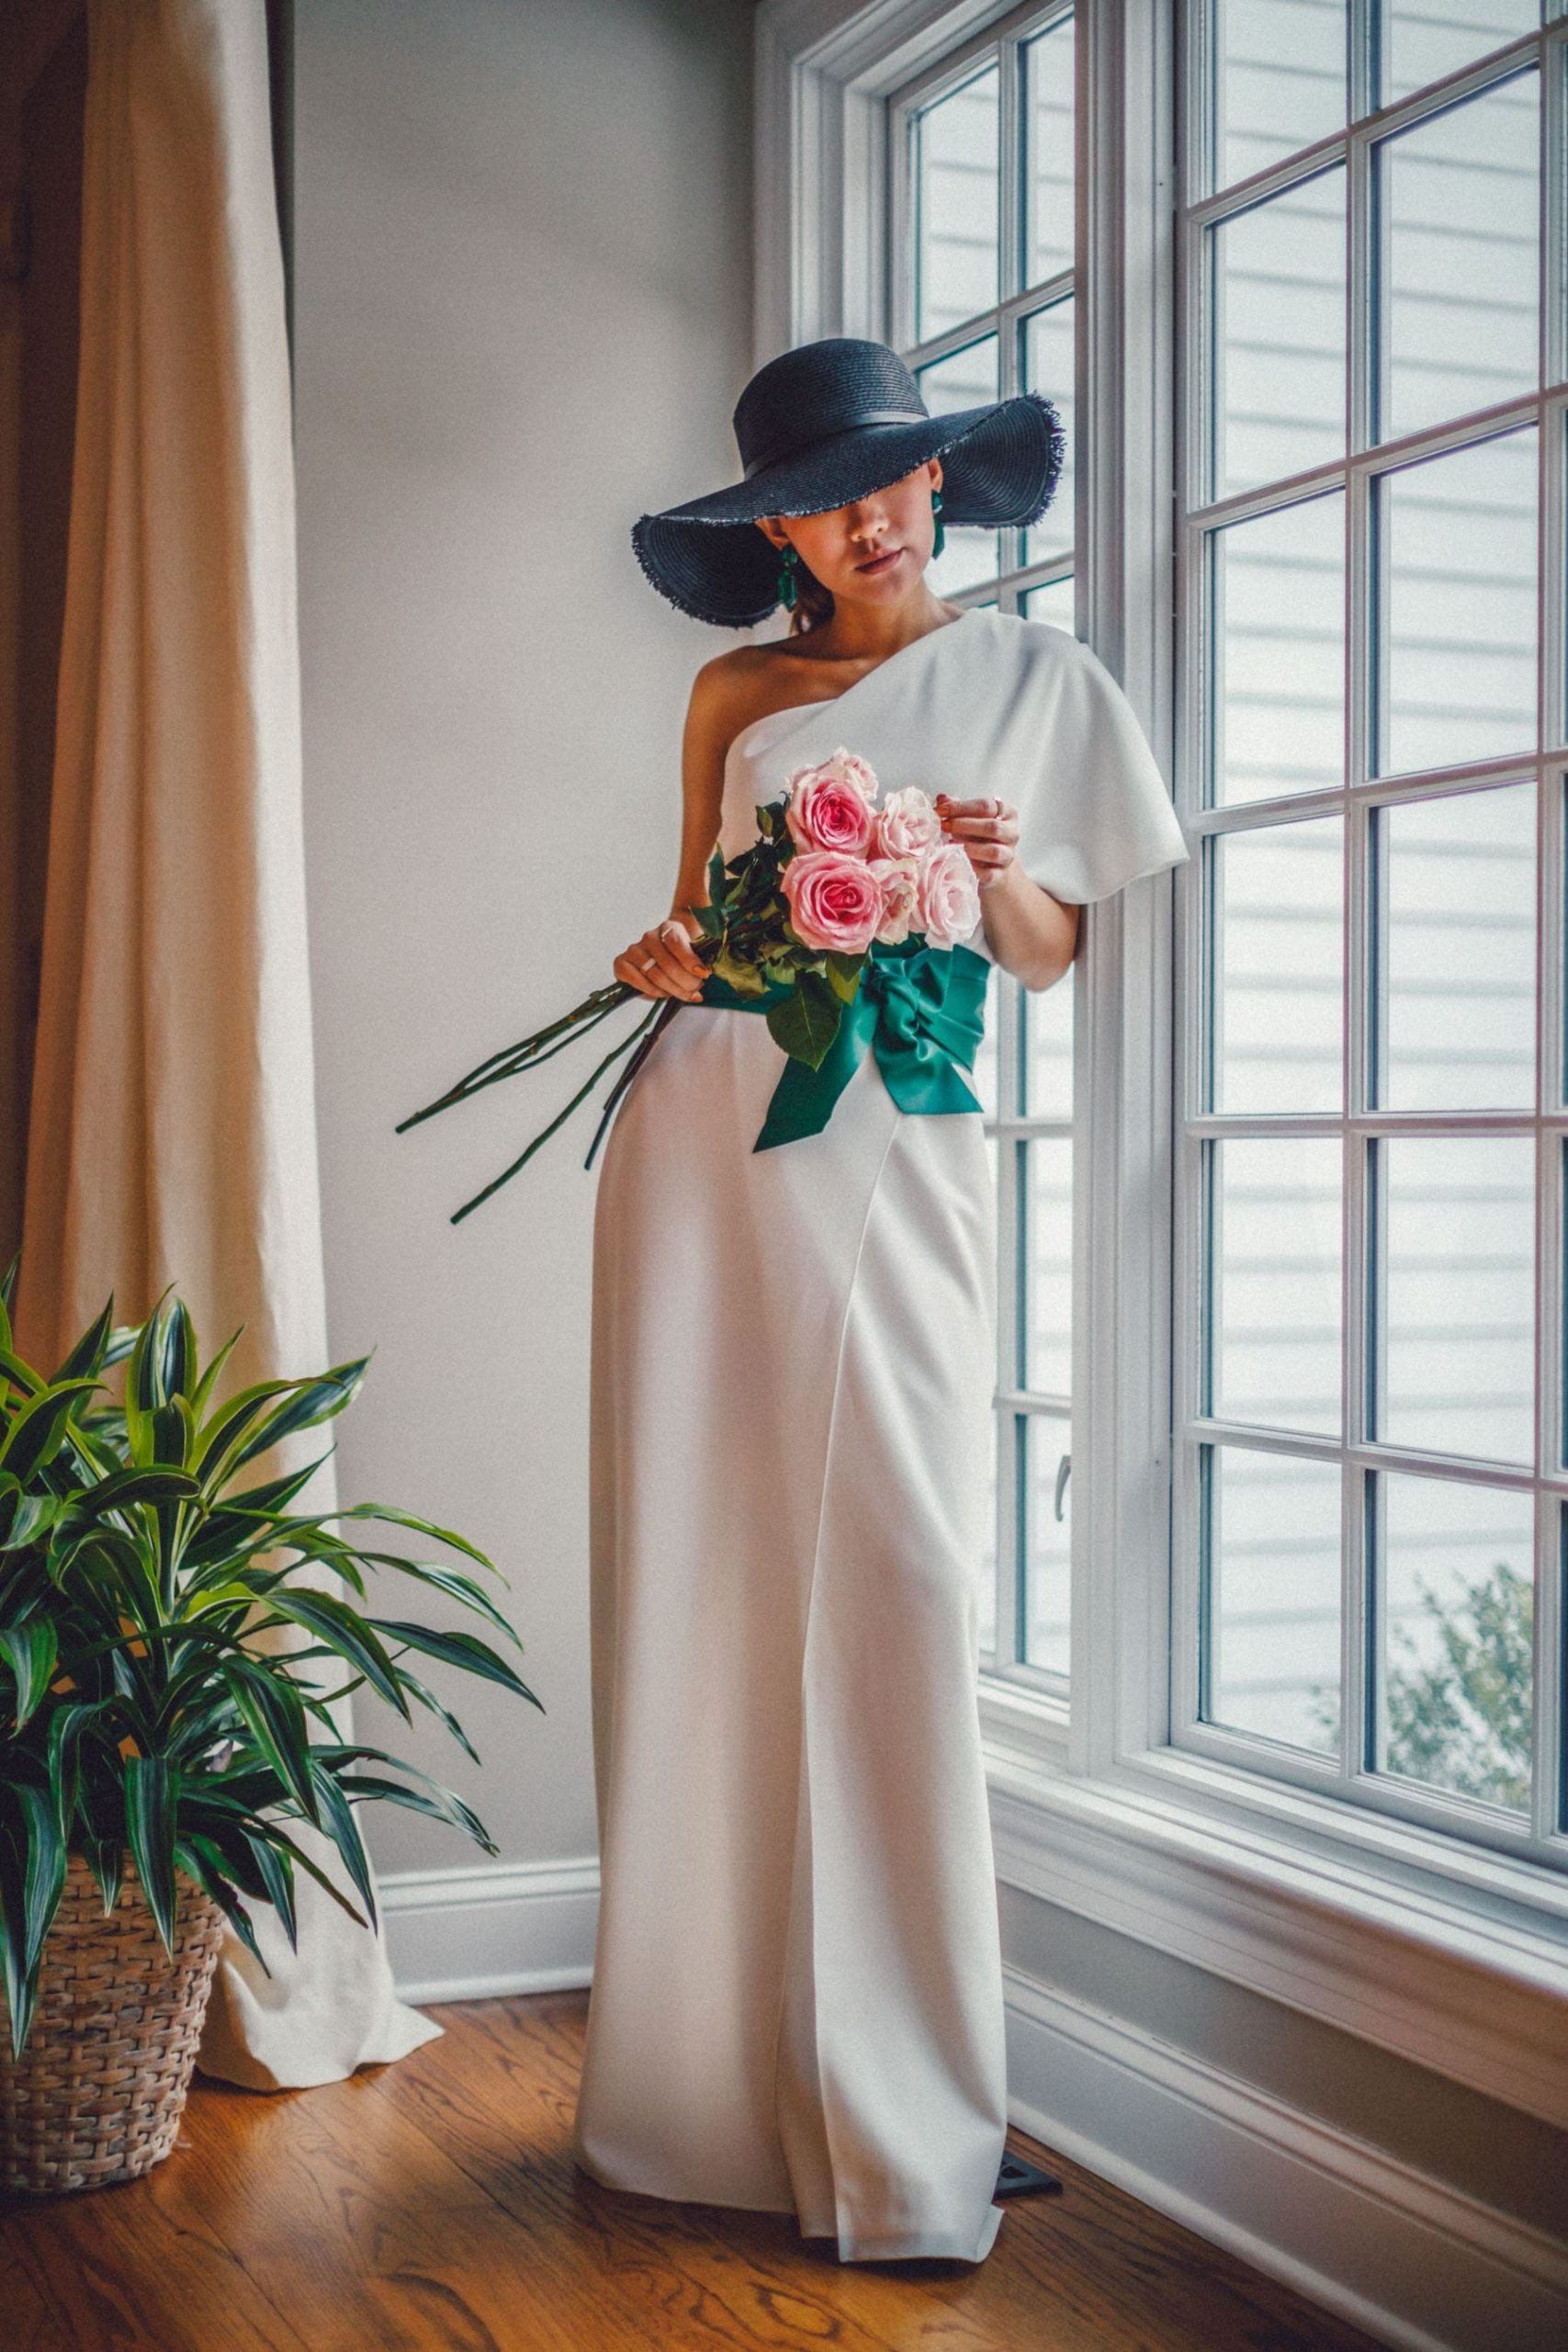 Stylish Looks for Holiday Travel, resort outfits, resort holiday travel looks, white maxi dress with green belt, straw hat, NotJessFashion